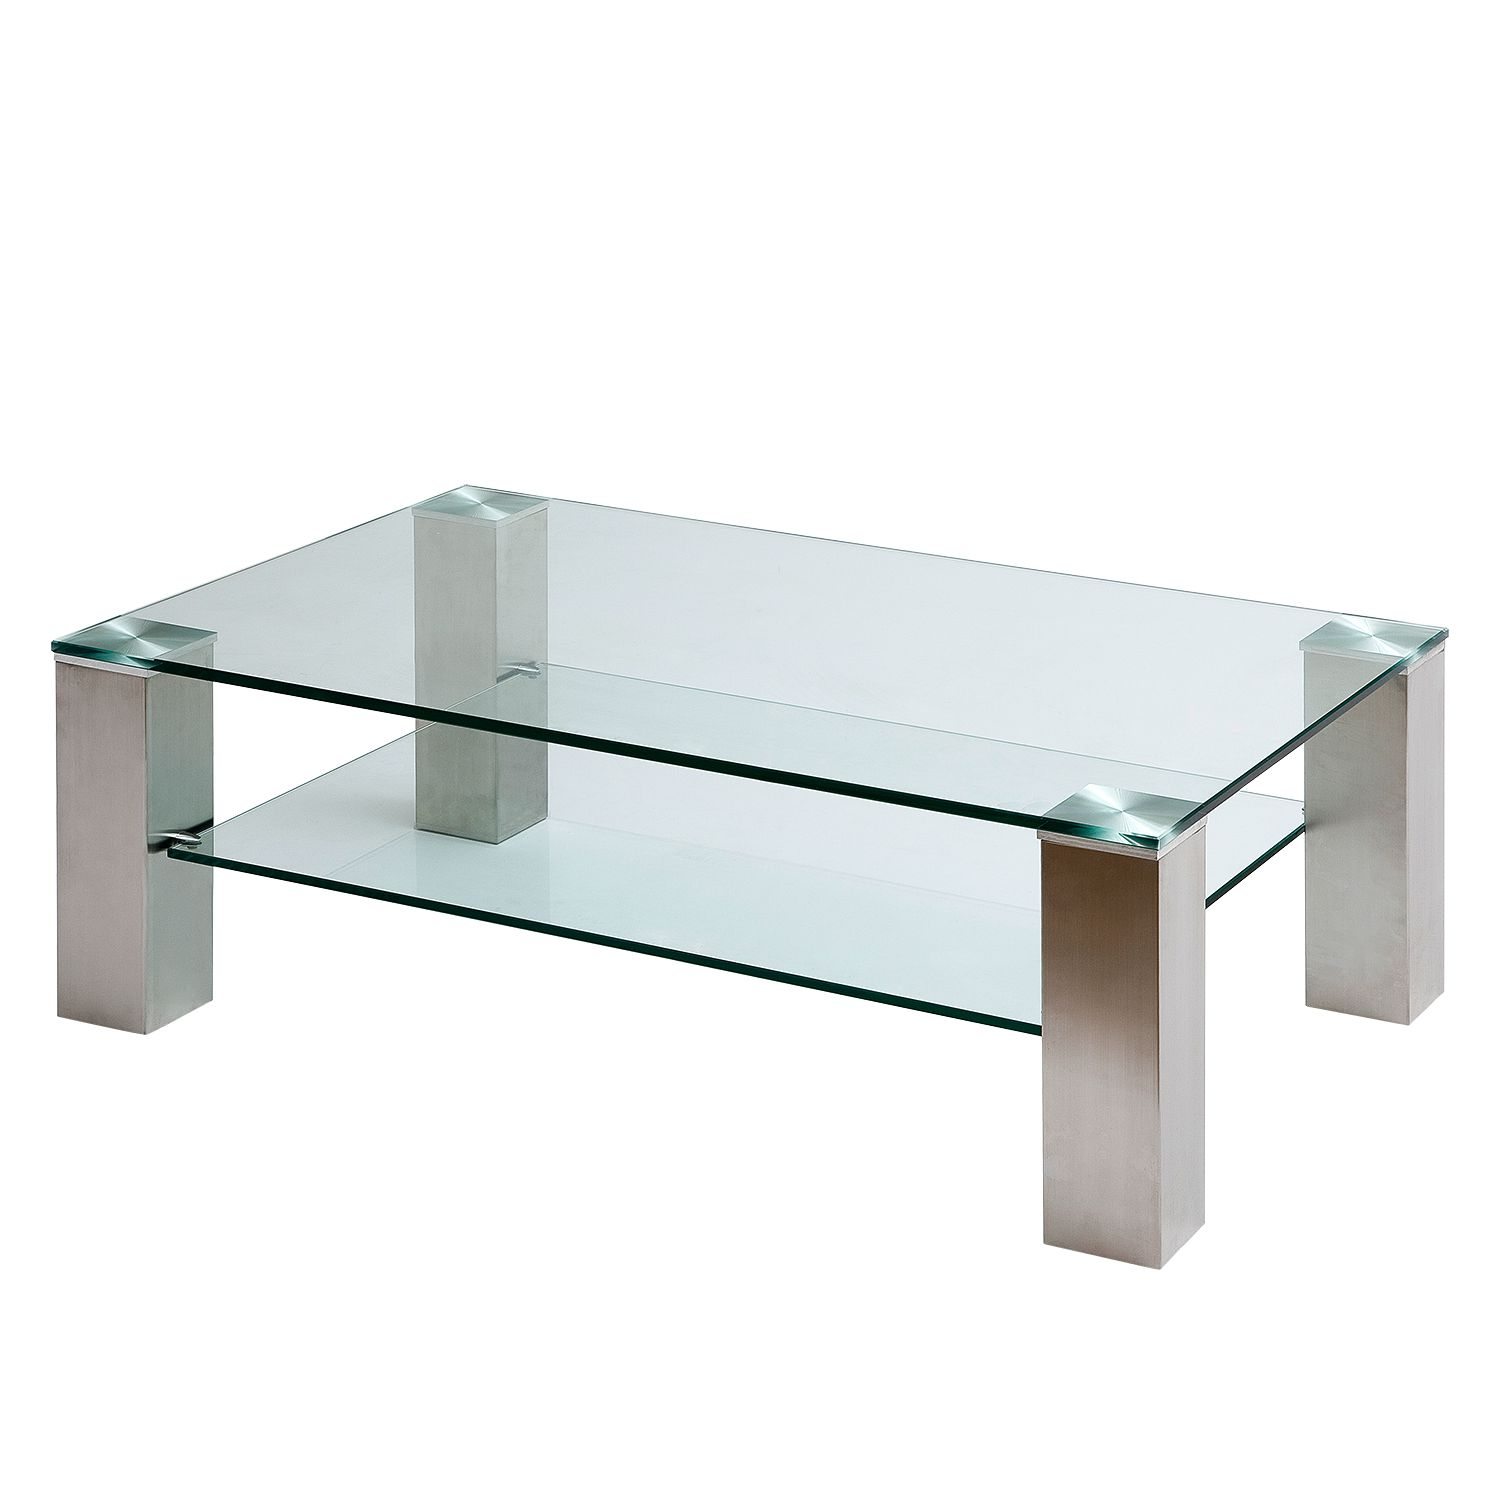 Table basse Malis - Acier inoxydable - 110 x 70 cm, loftscape